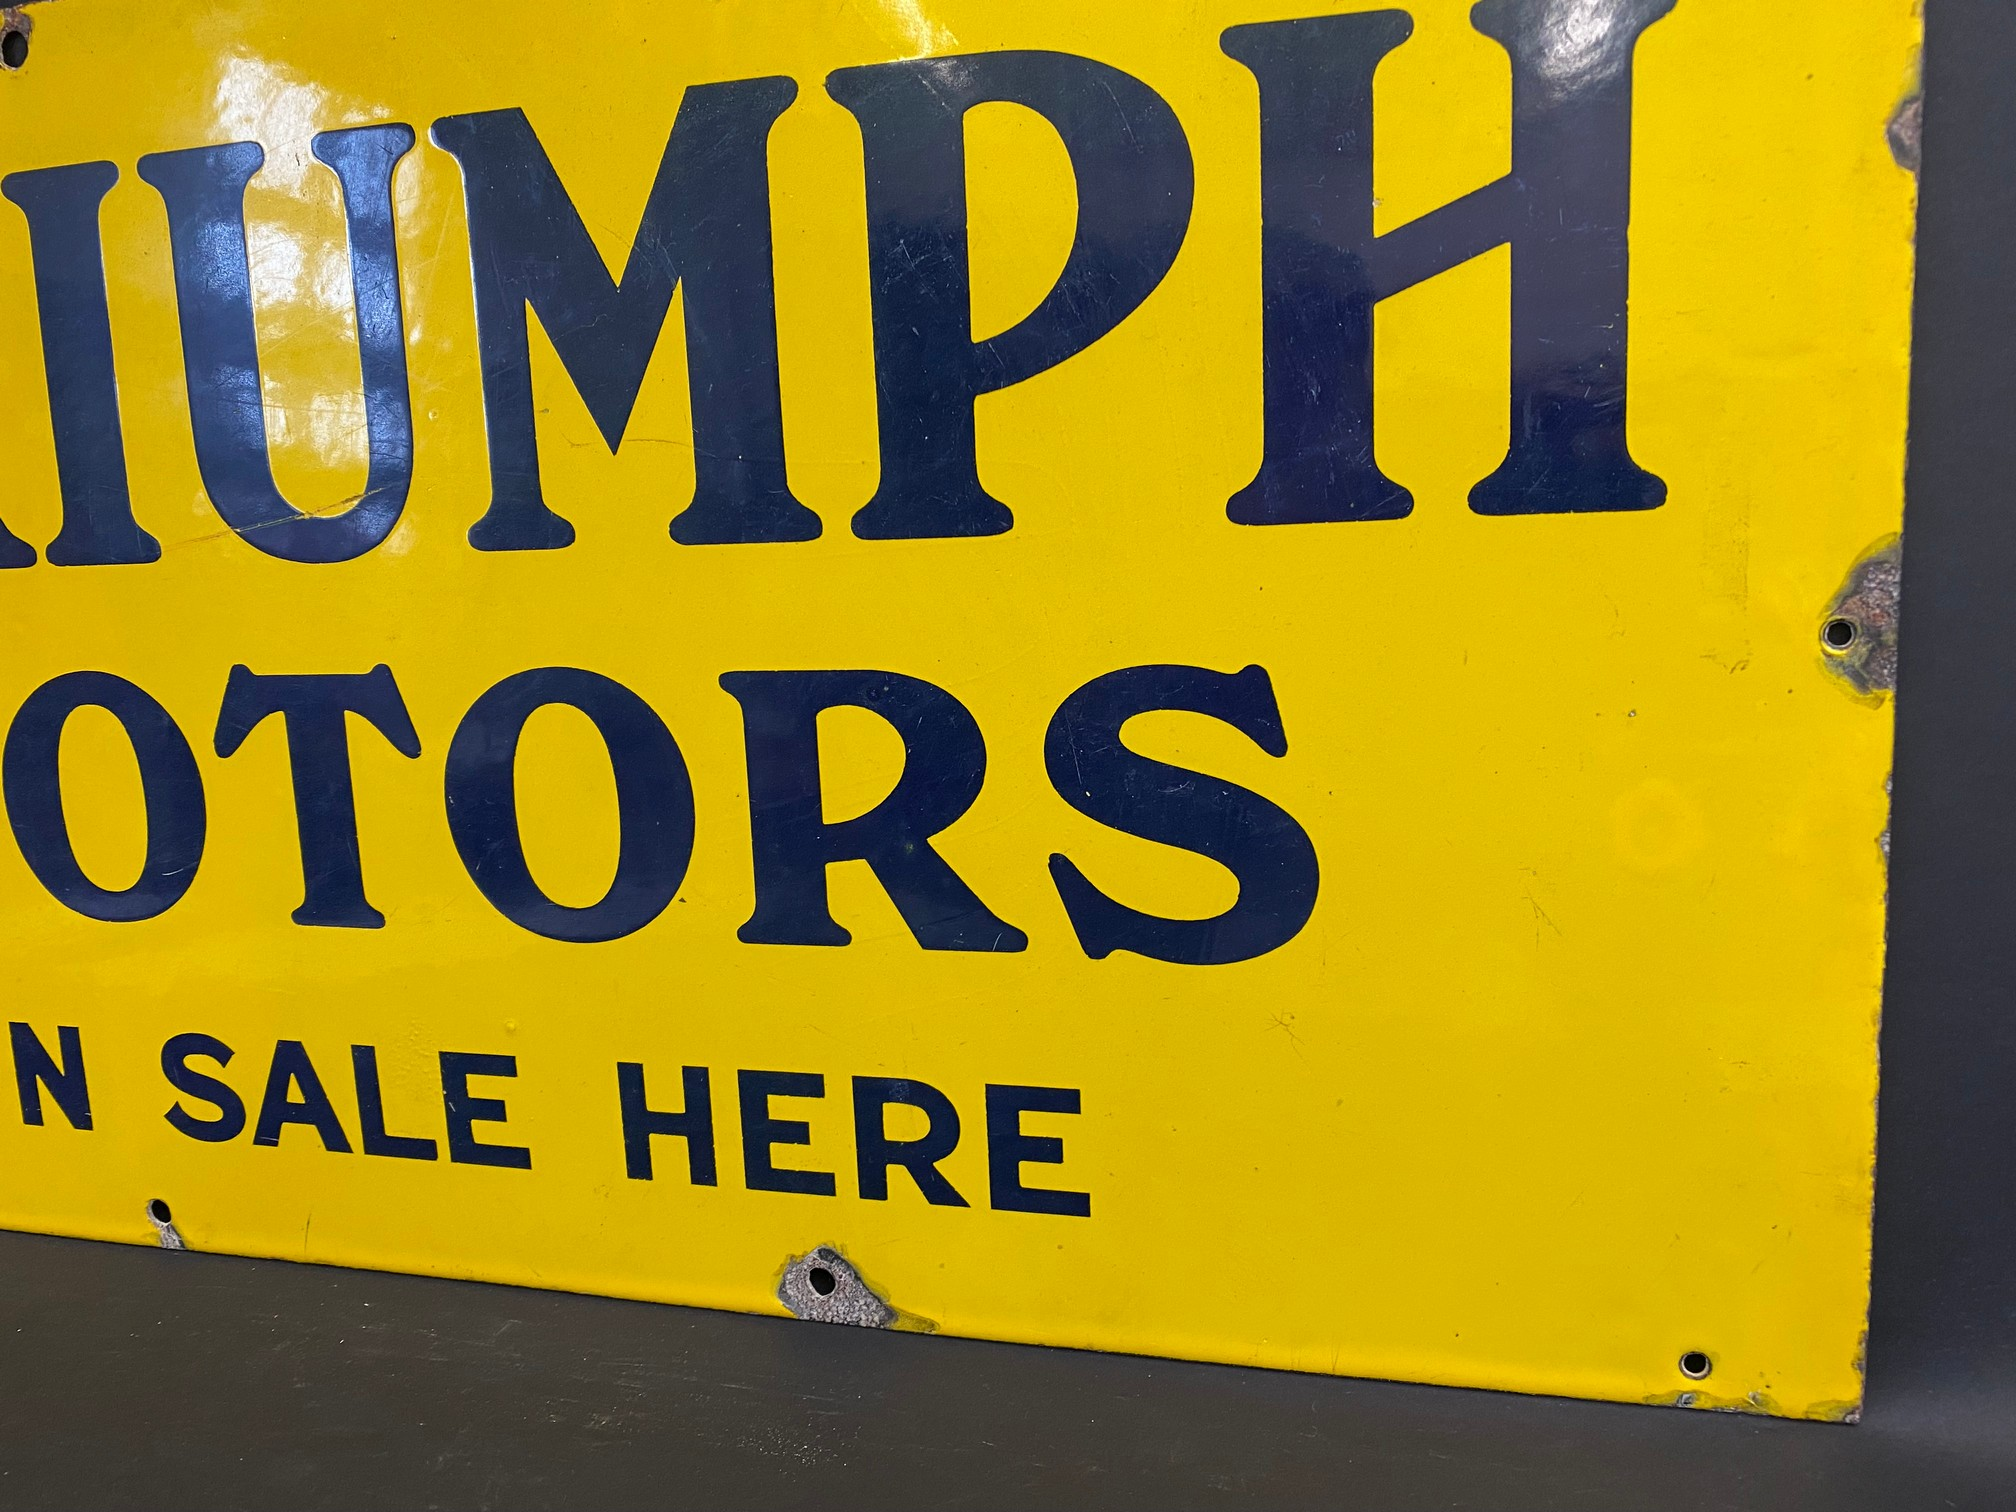 """A Triumph Motors on sale here rectangular enamel sign in excellent condition, 30 x 15"""". - Image 4 of 5"""